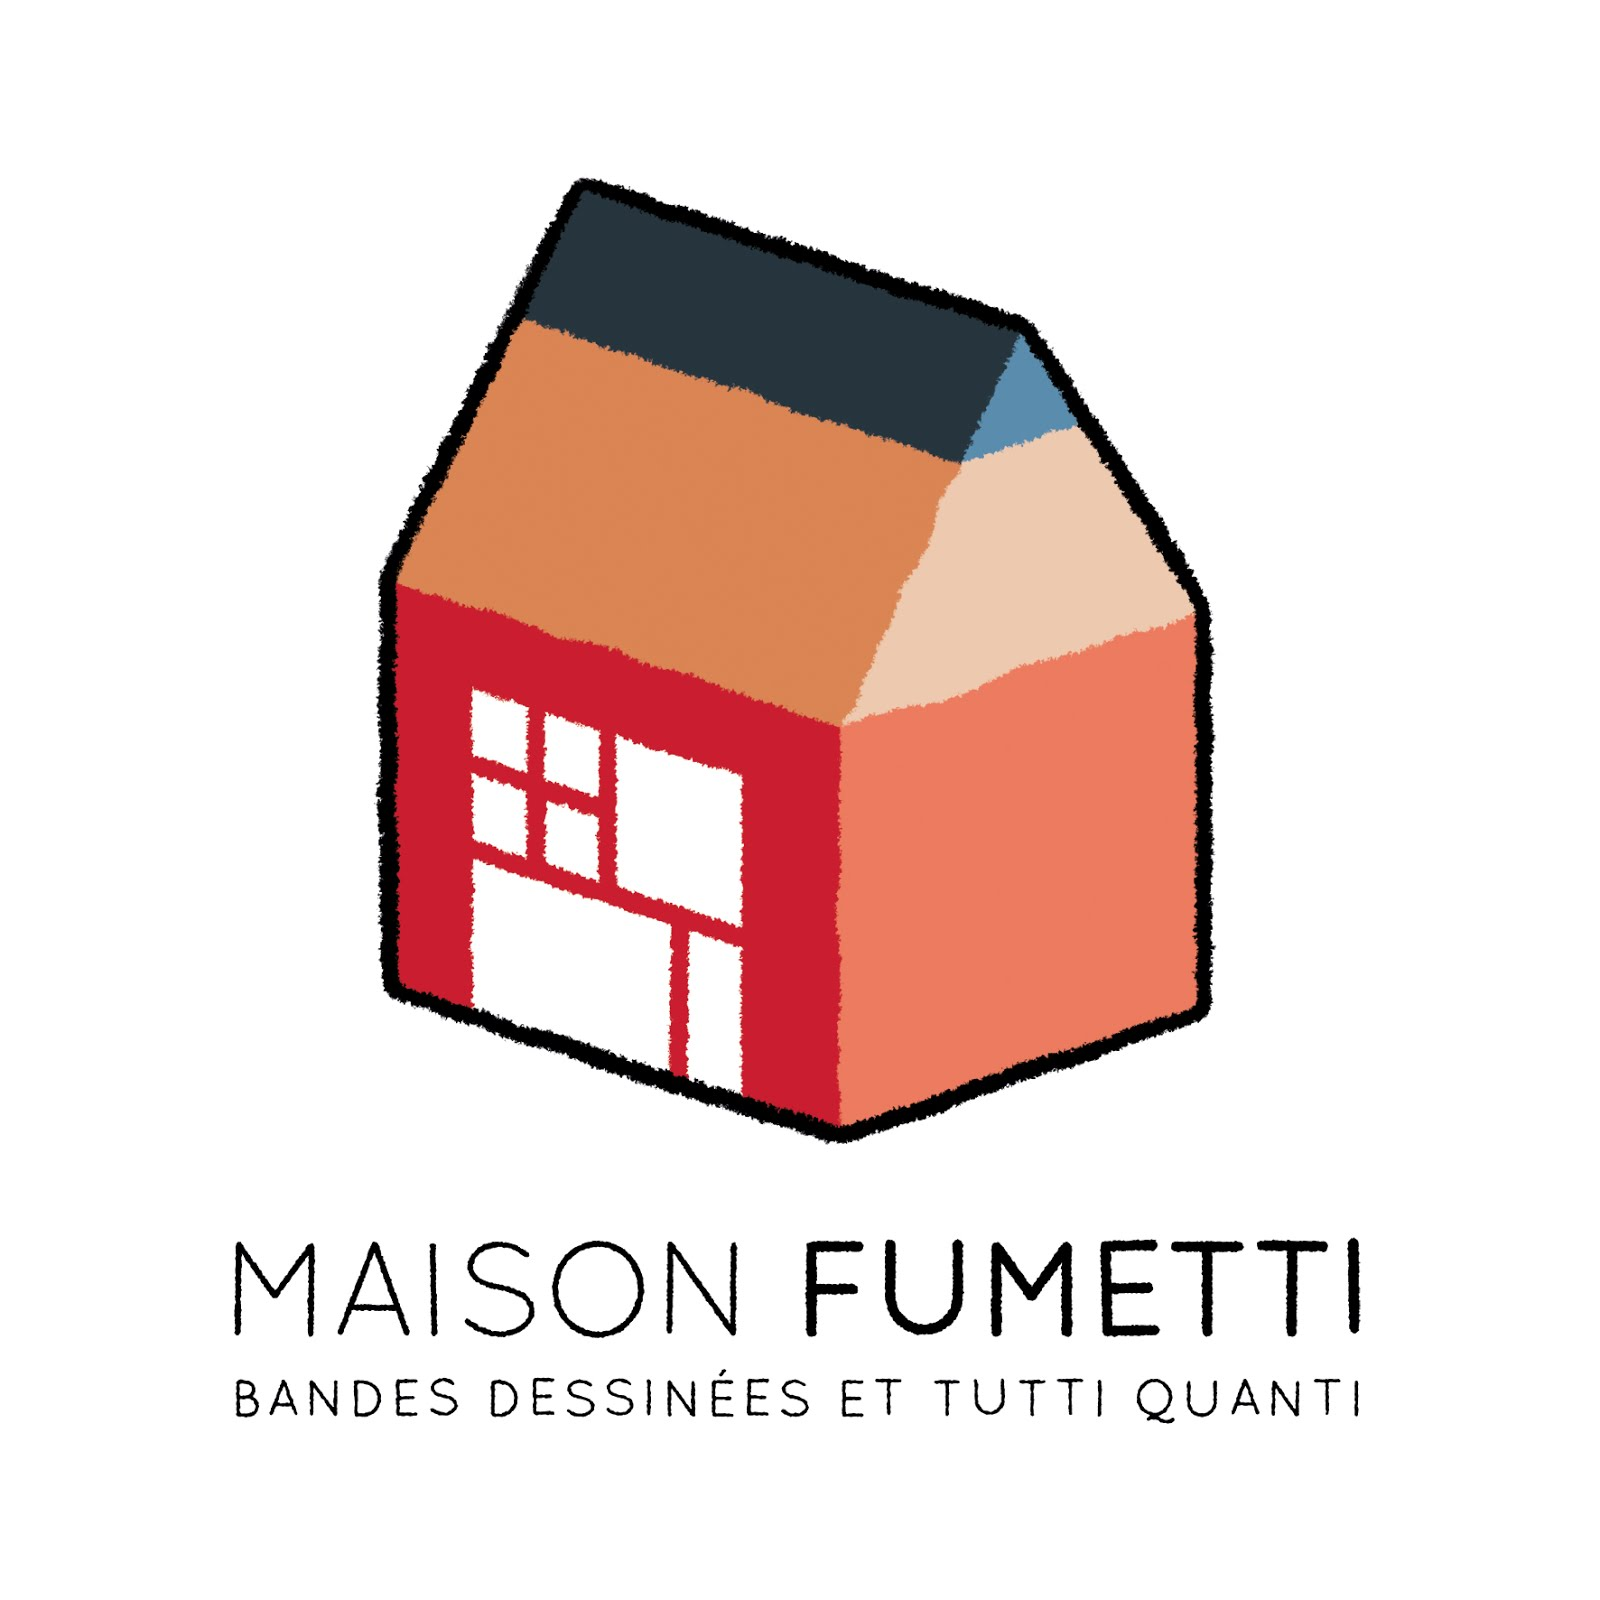 MAISON FUMETTI